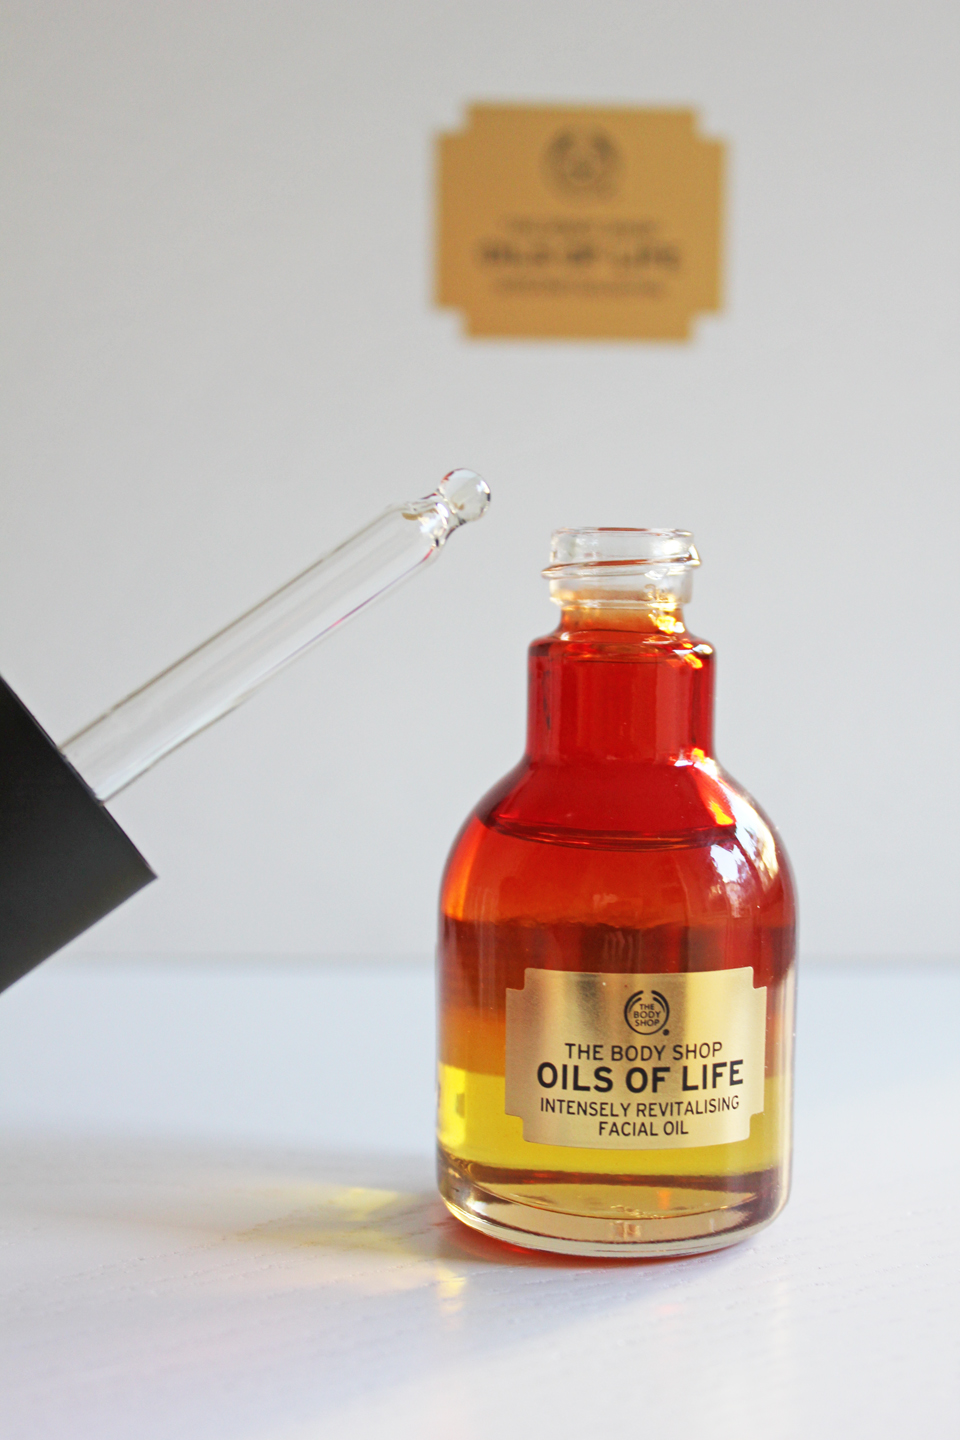 The Body Shop Oils of Life Intensely Revitalising Facial Oil 2